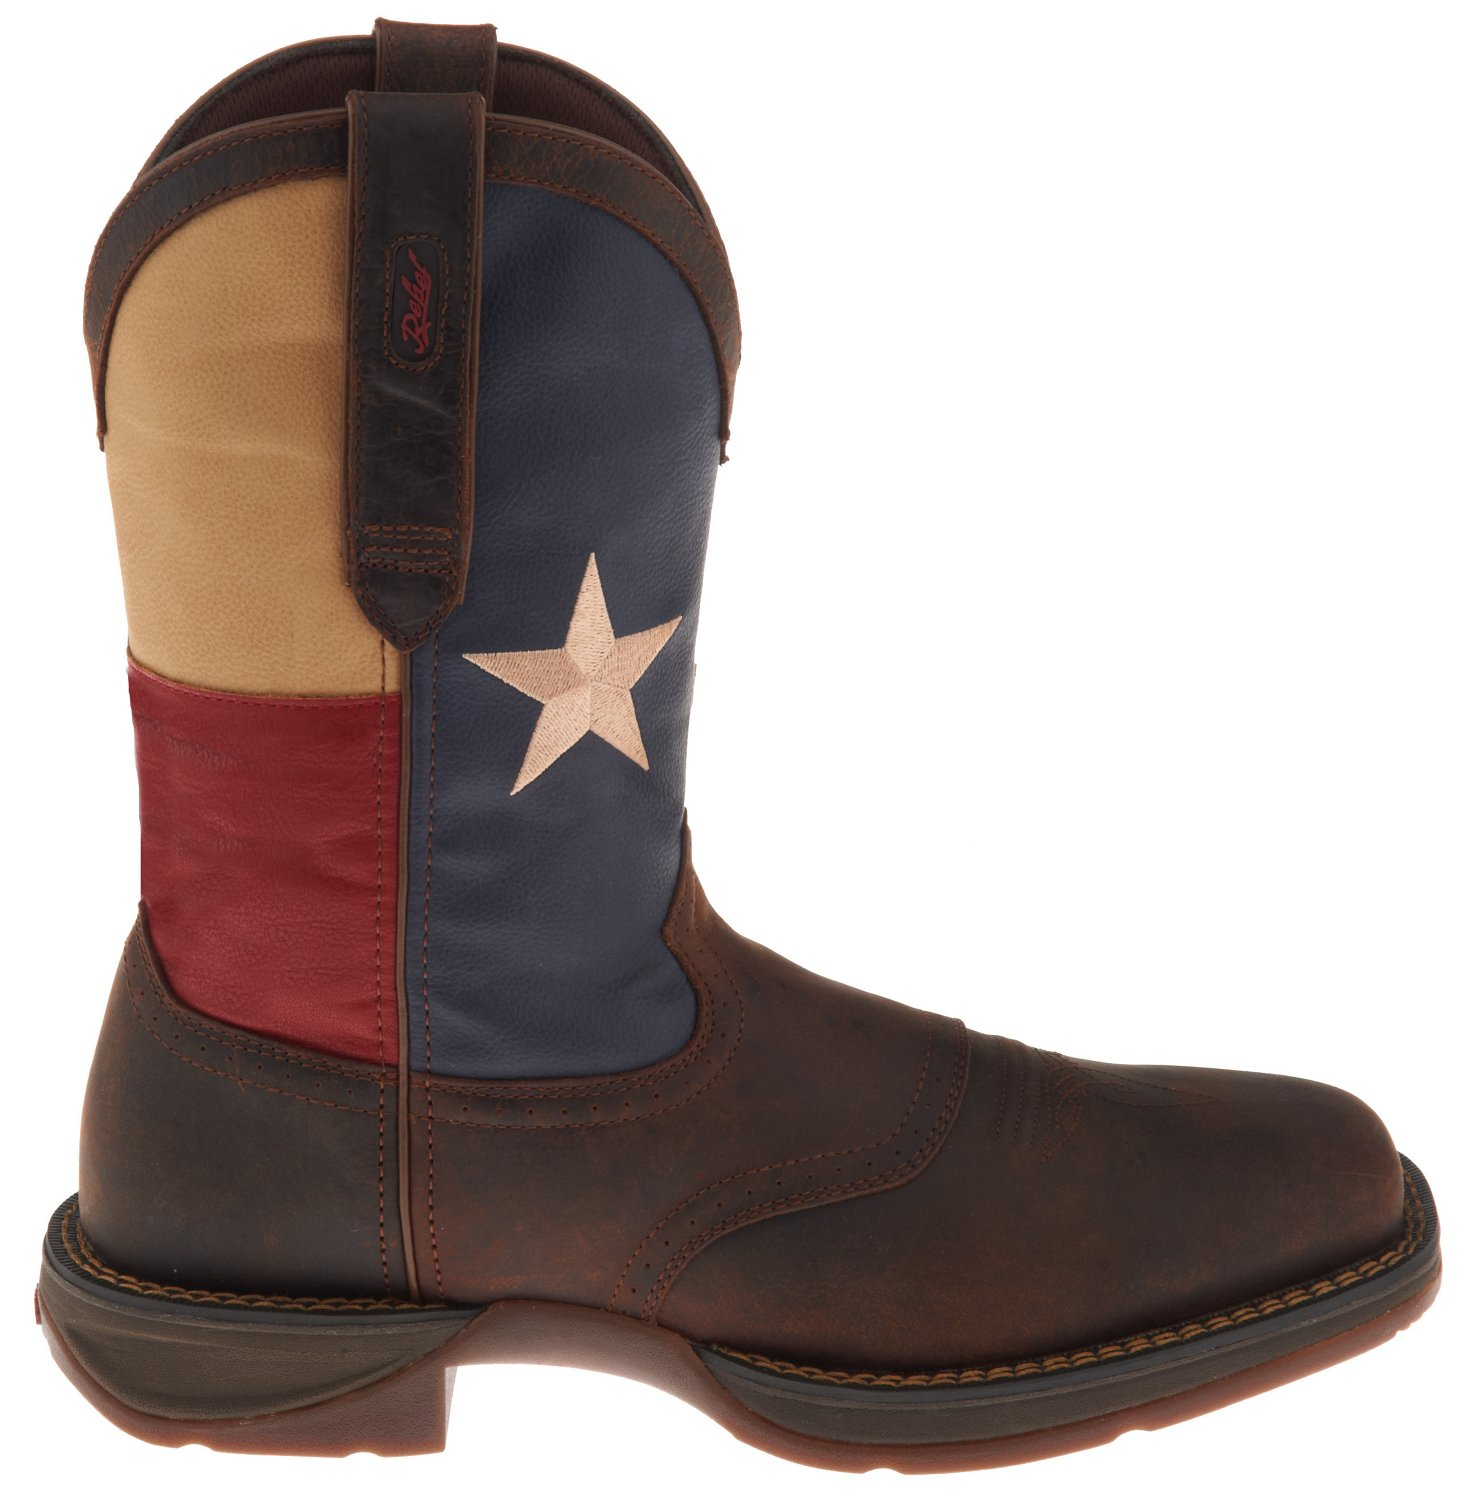 5dcb815e41e Display product reviews for Durango Men s Rebel Texas Flag Western Boots